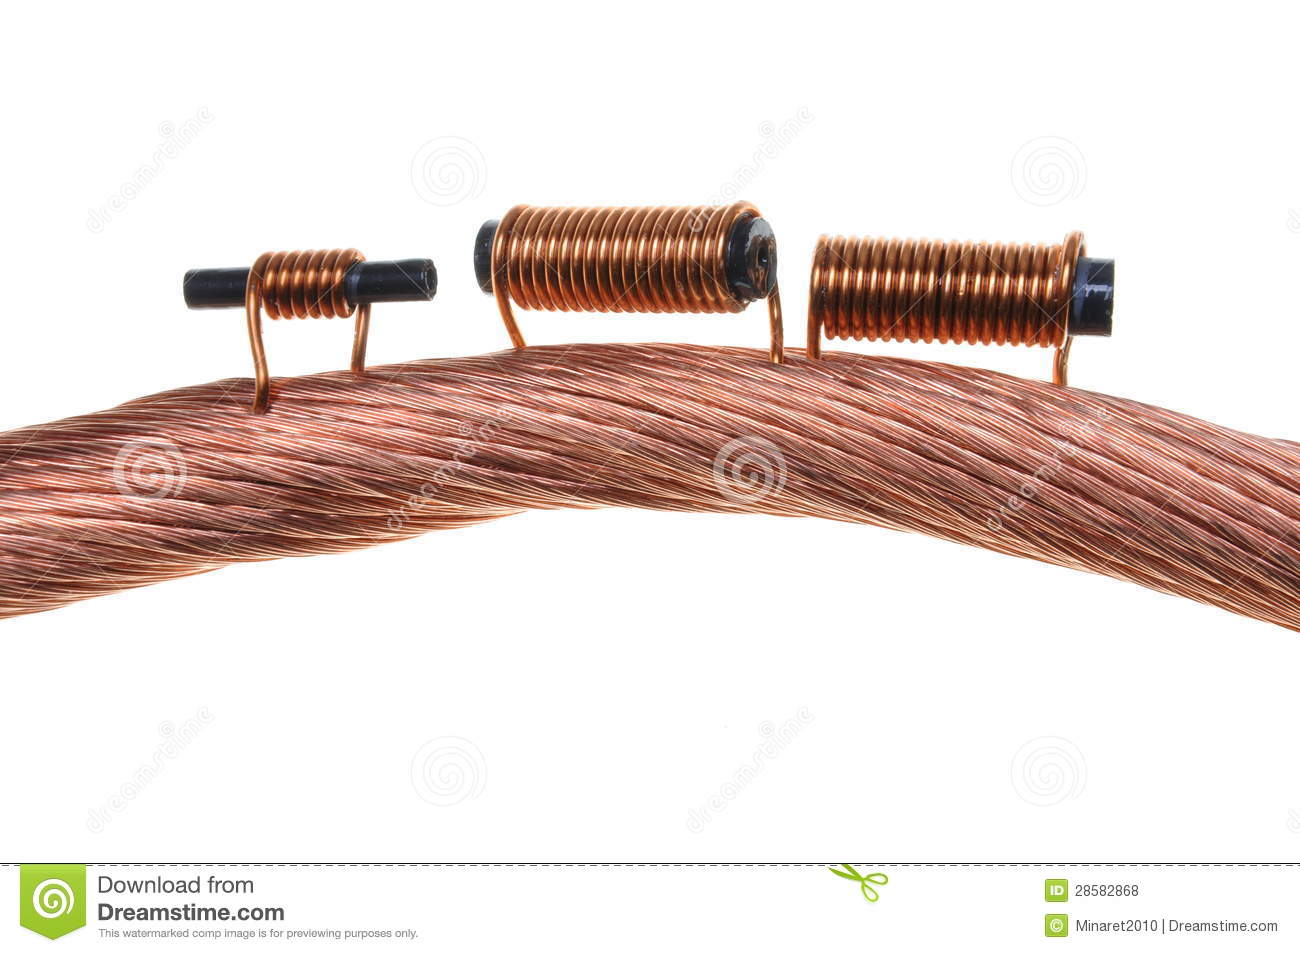 Copper Cable Market Share : Copper coils on white background royalty free stock photo